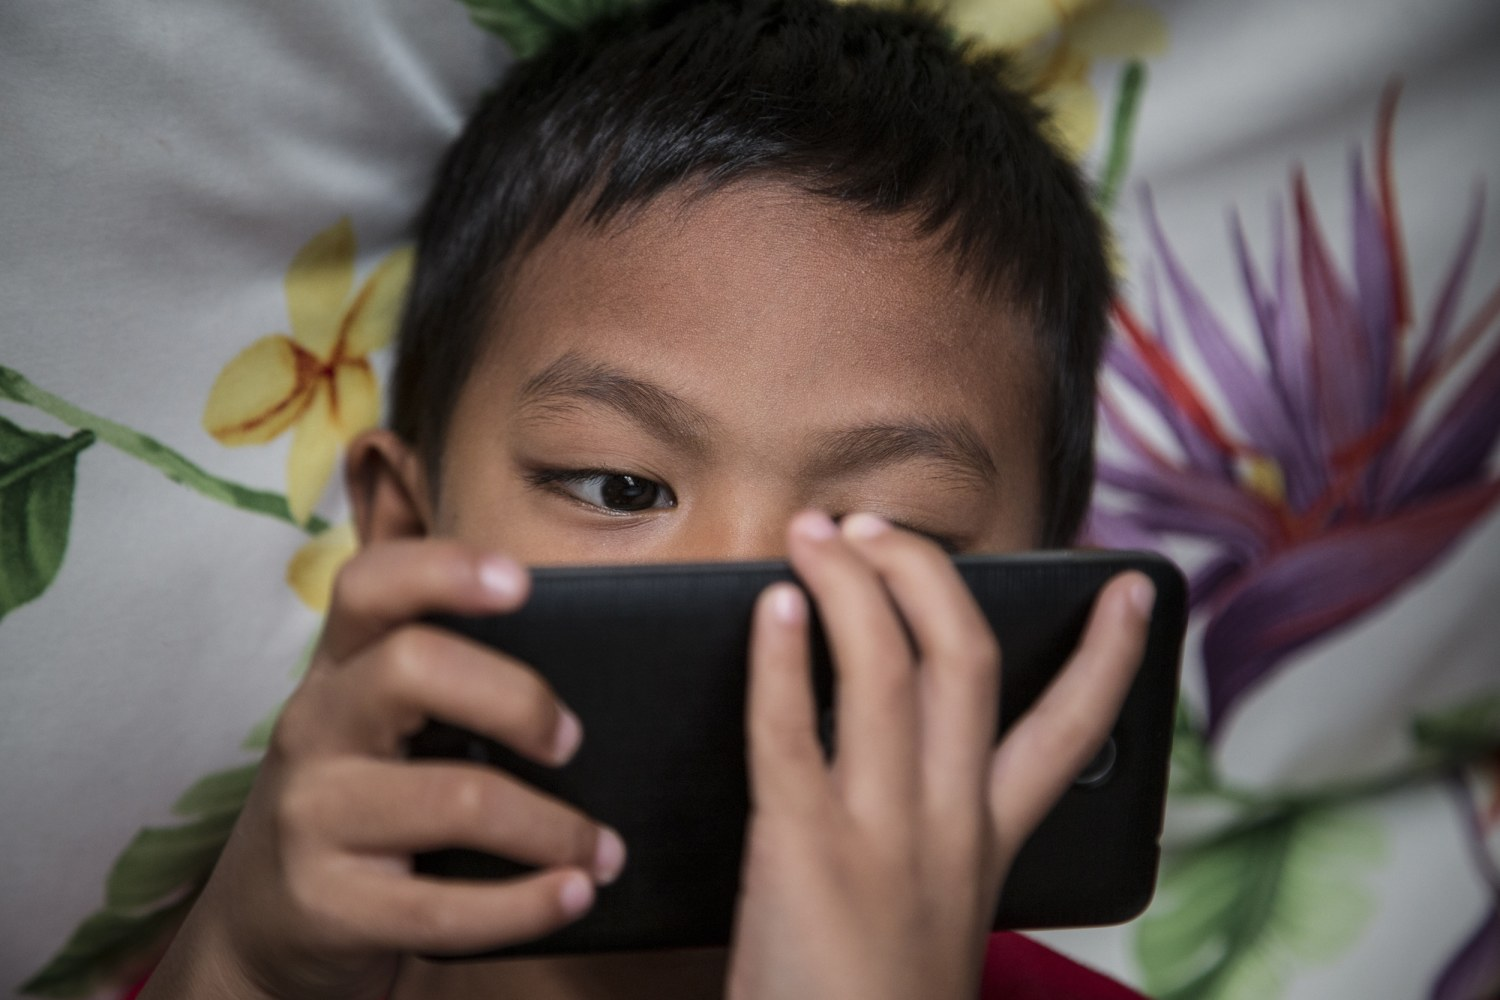 Step Away From The Screen: Doctors Release New Media Rules For Kids